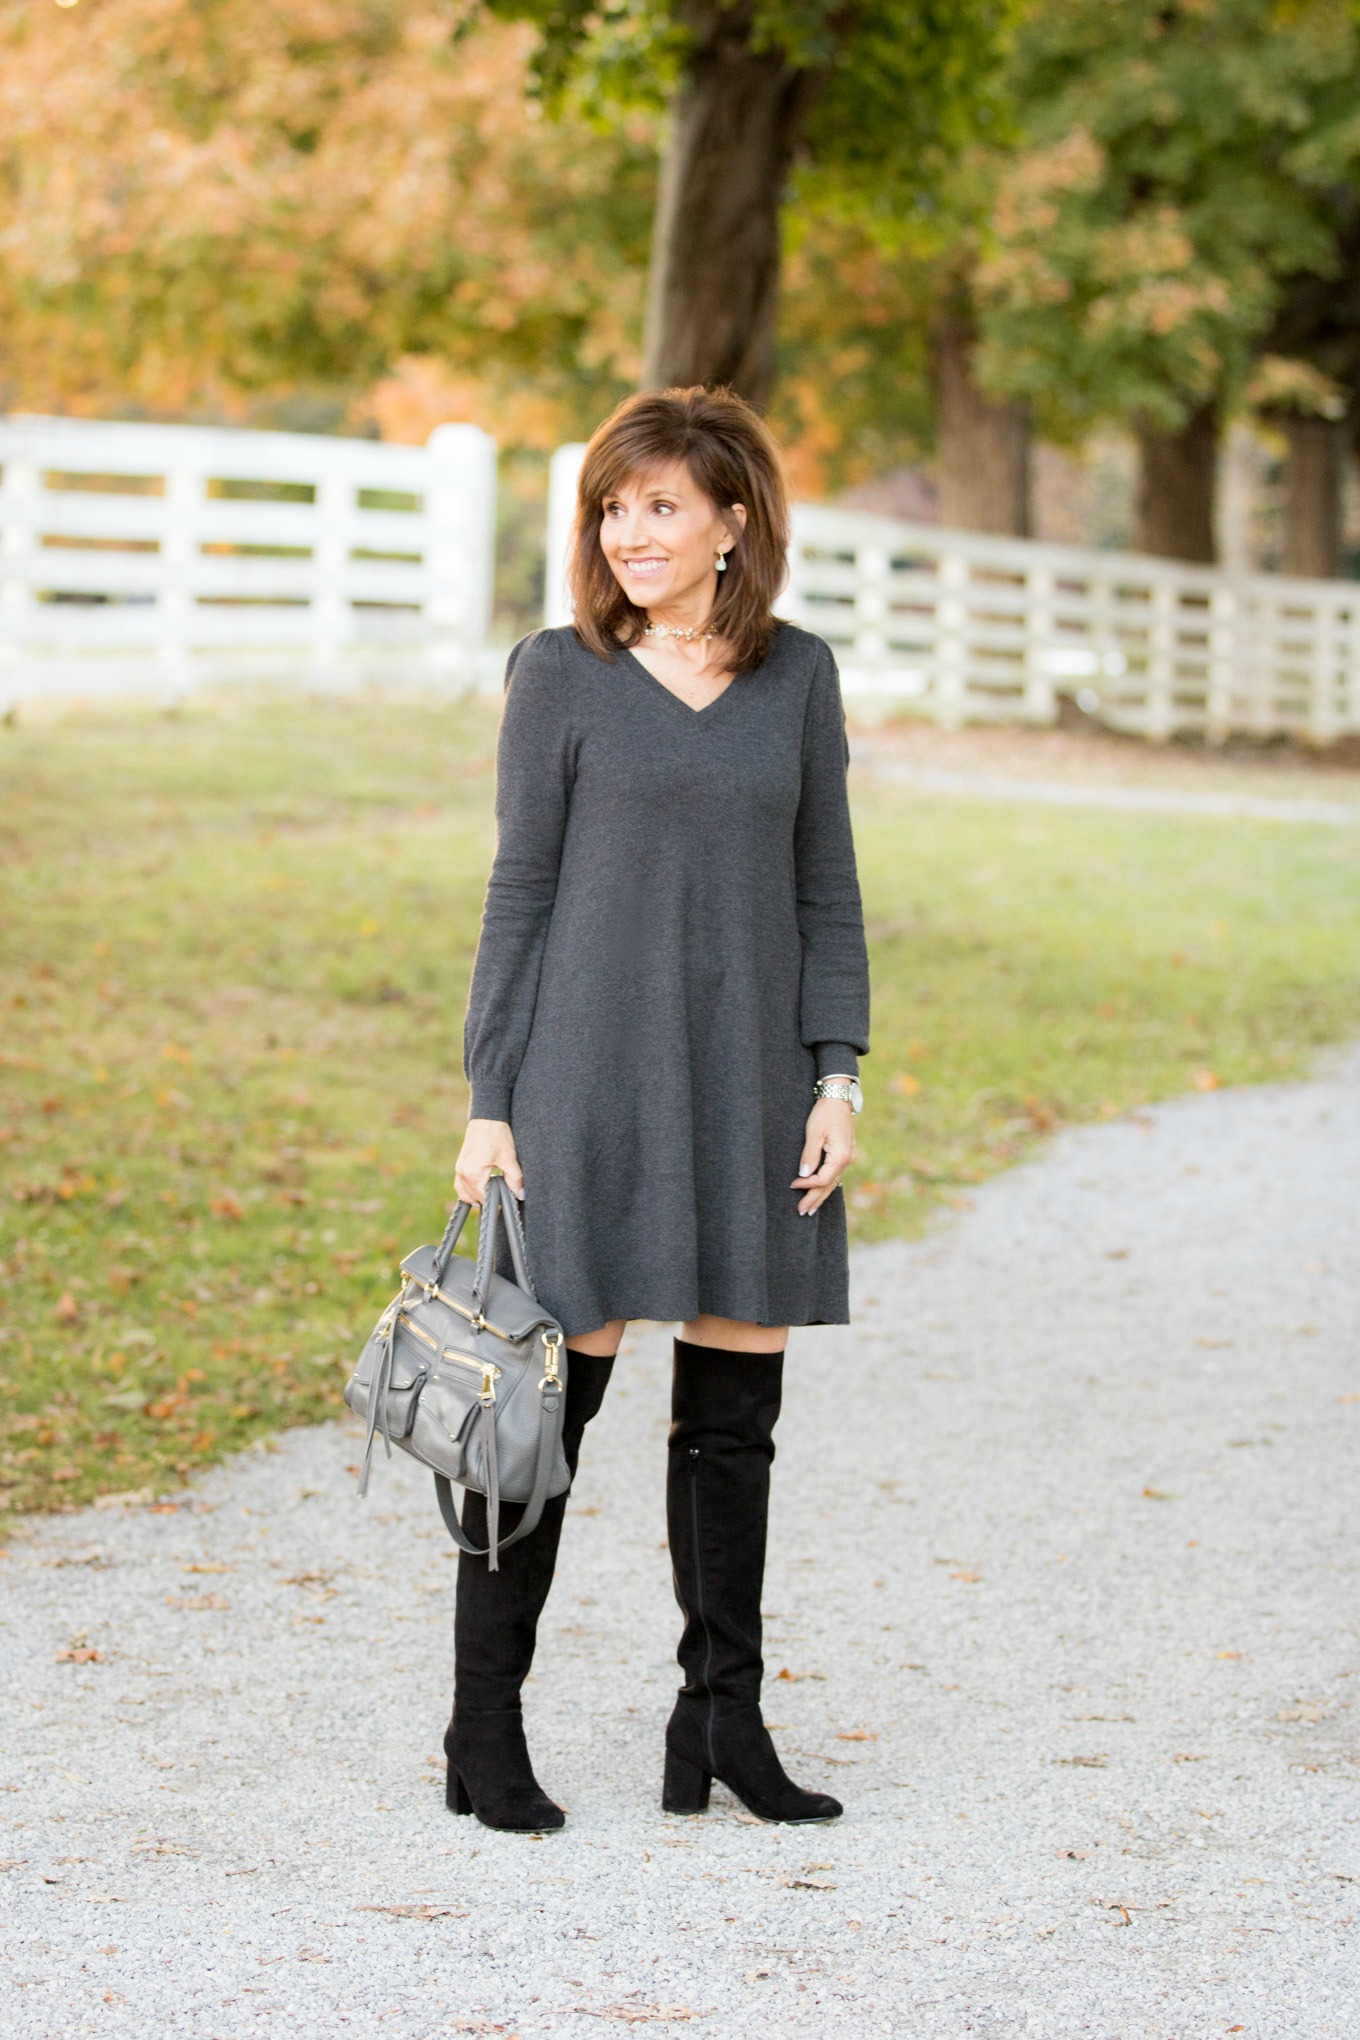 Fashion blogger Cyndi Spivey styling a sweater dress from Loft.